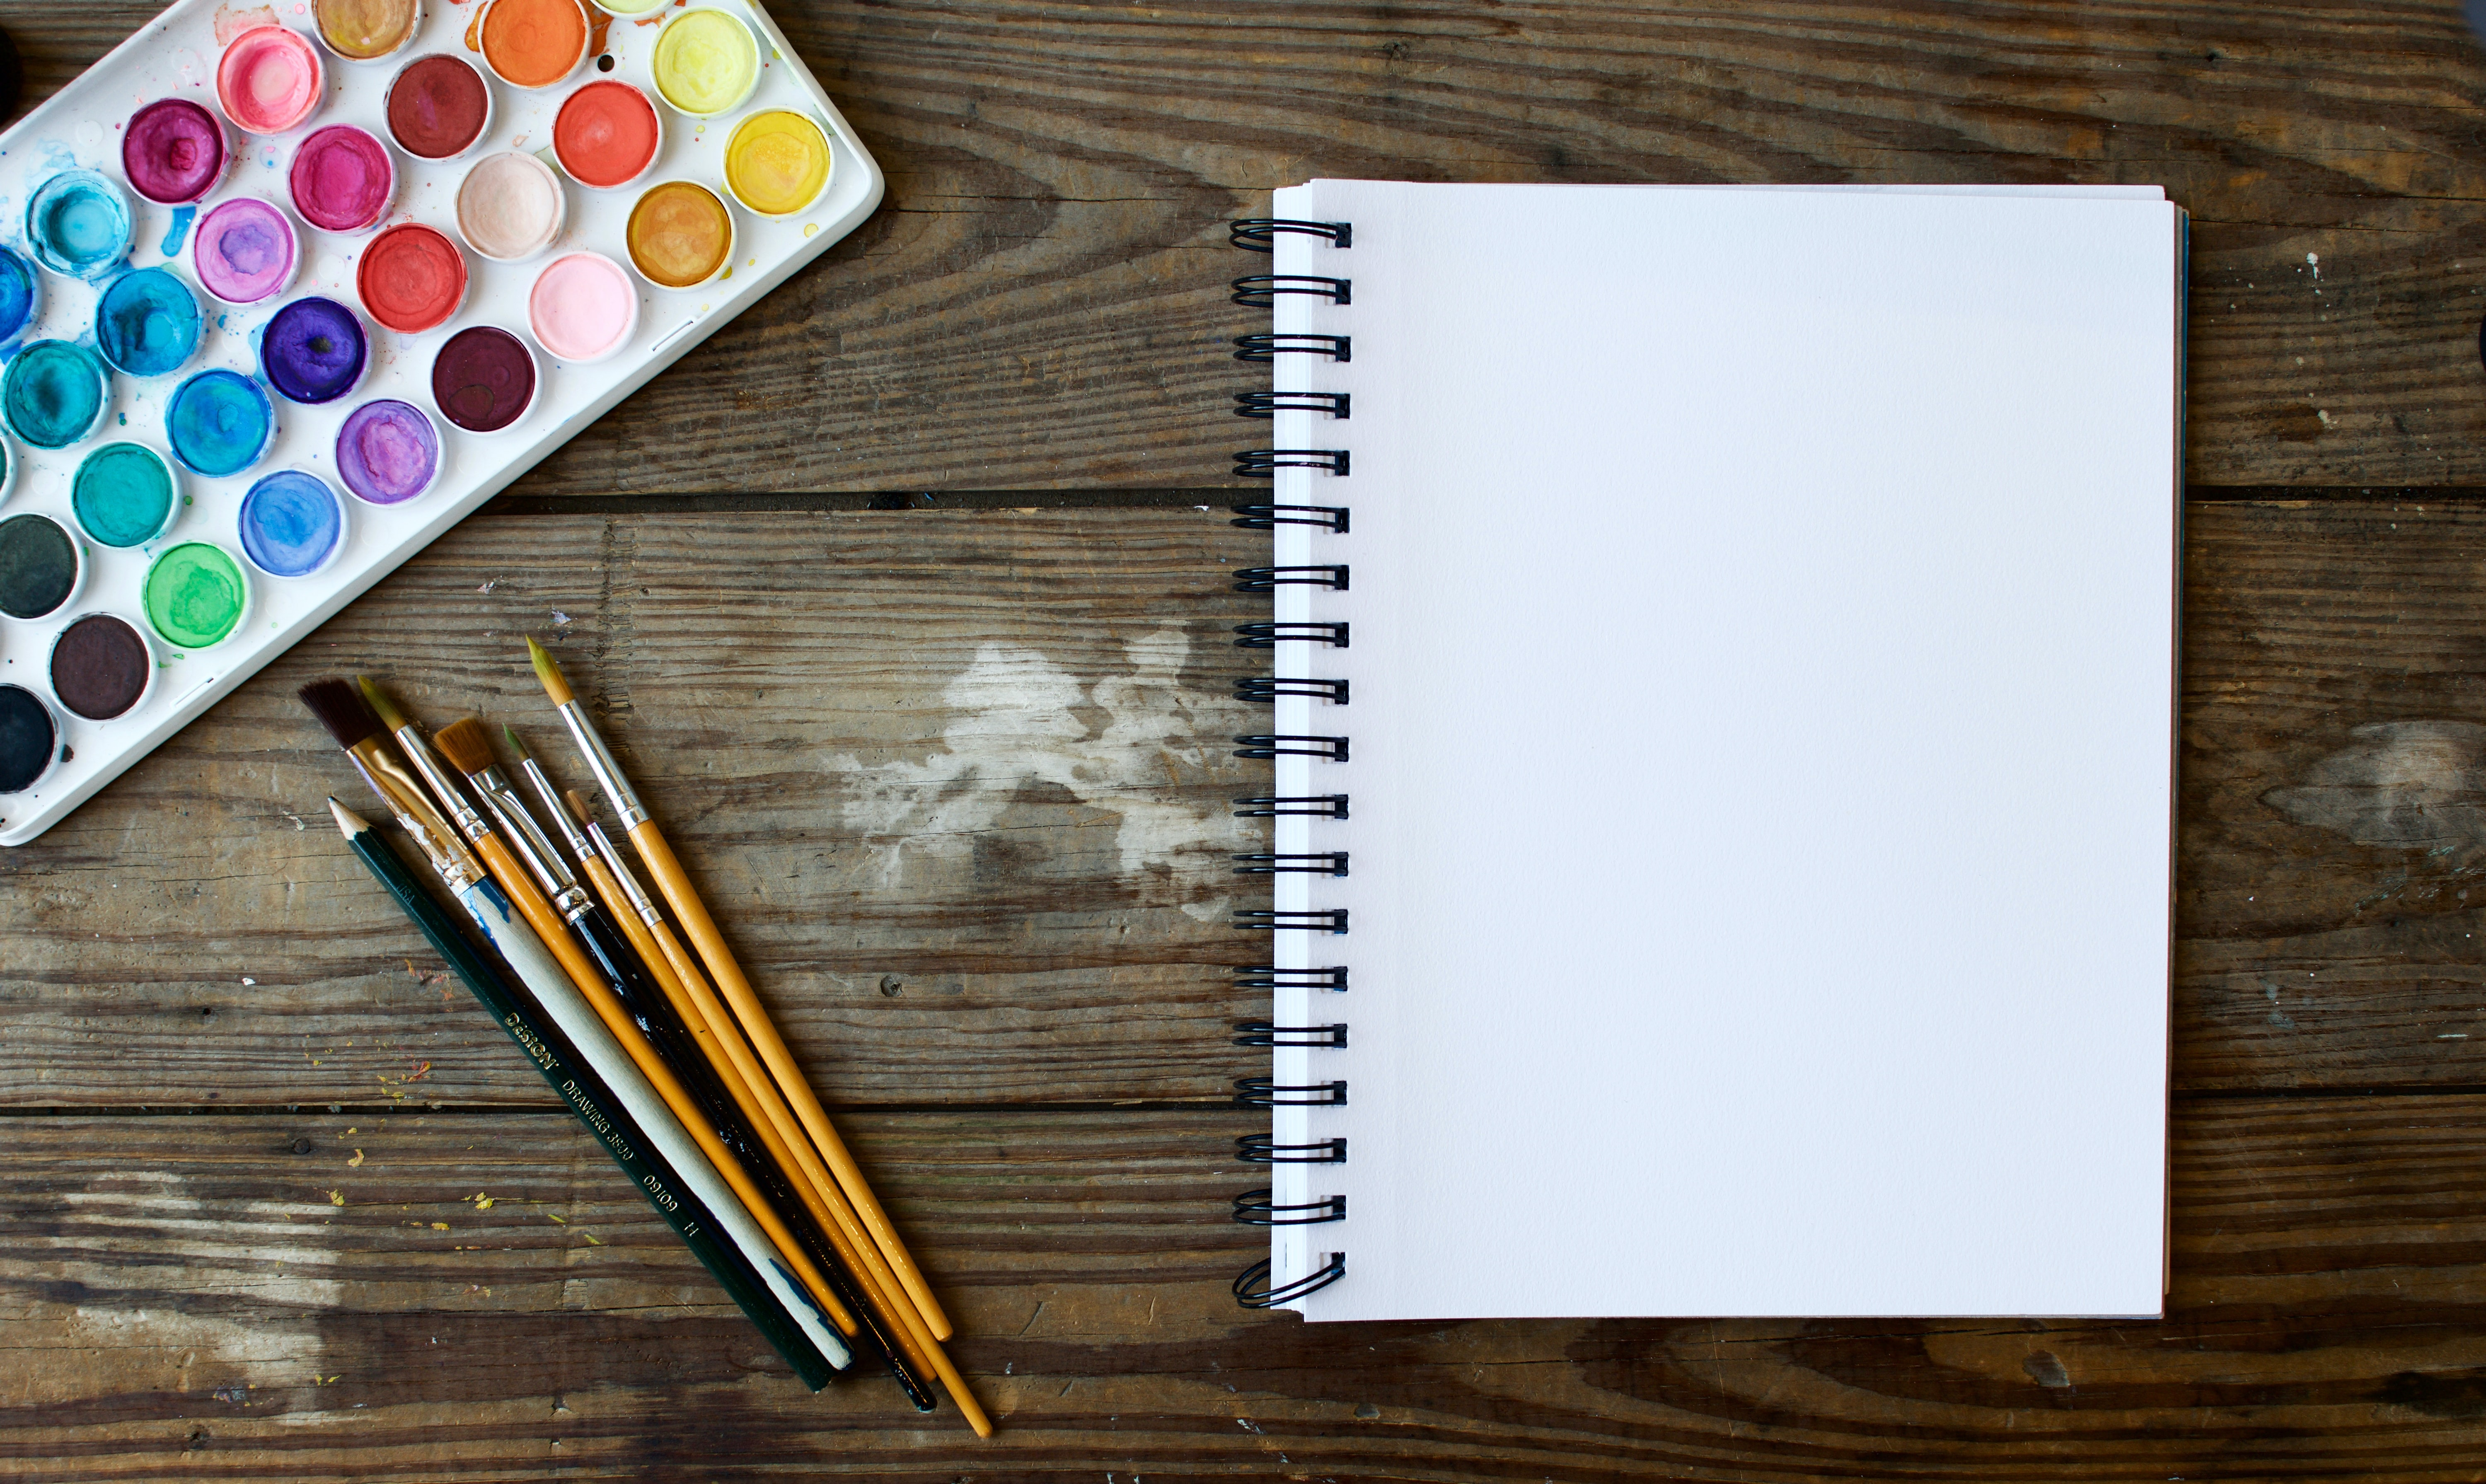 photo of watercolor paints and paintbrushes next to a blank notebook